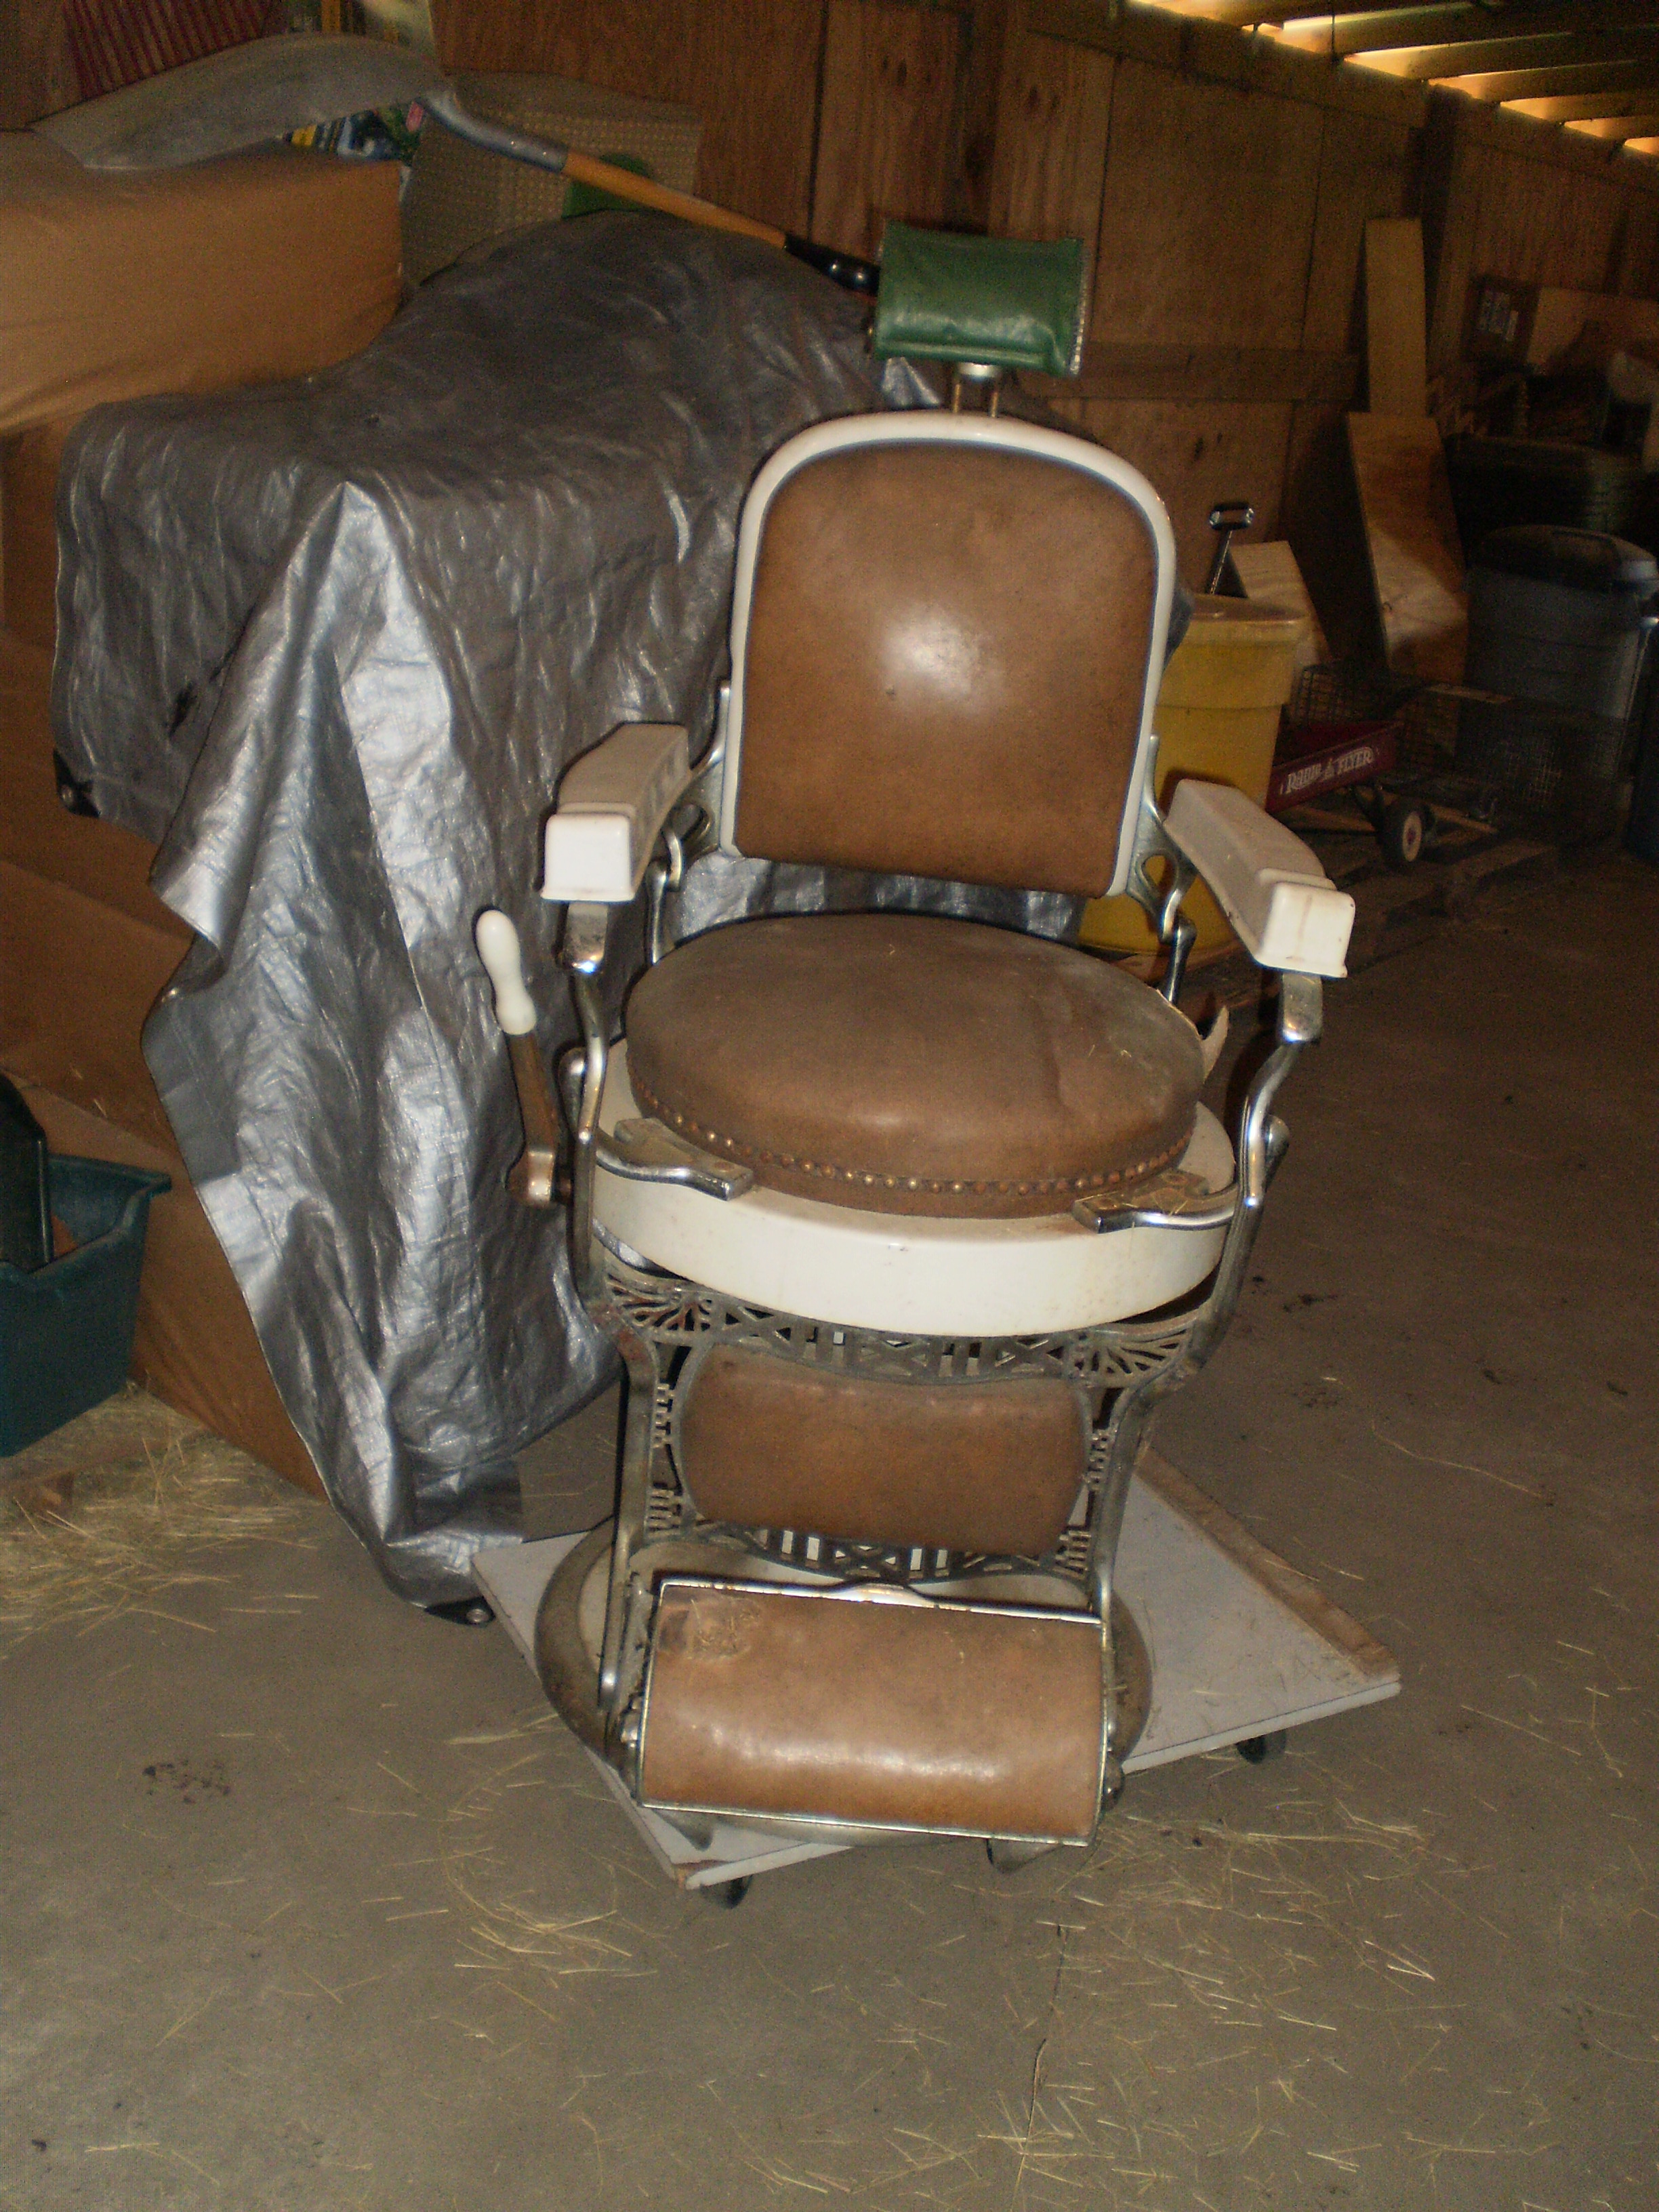 Koken barber chair determine age : koken barber chairs - Cheerinfomania.Com